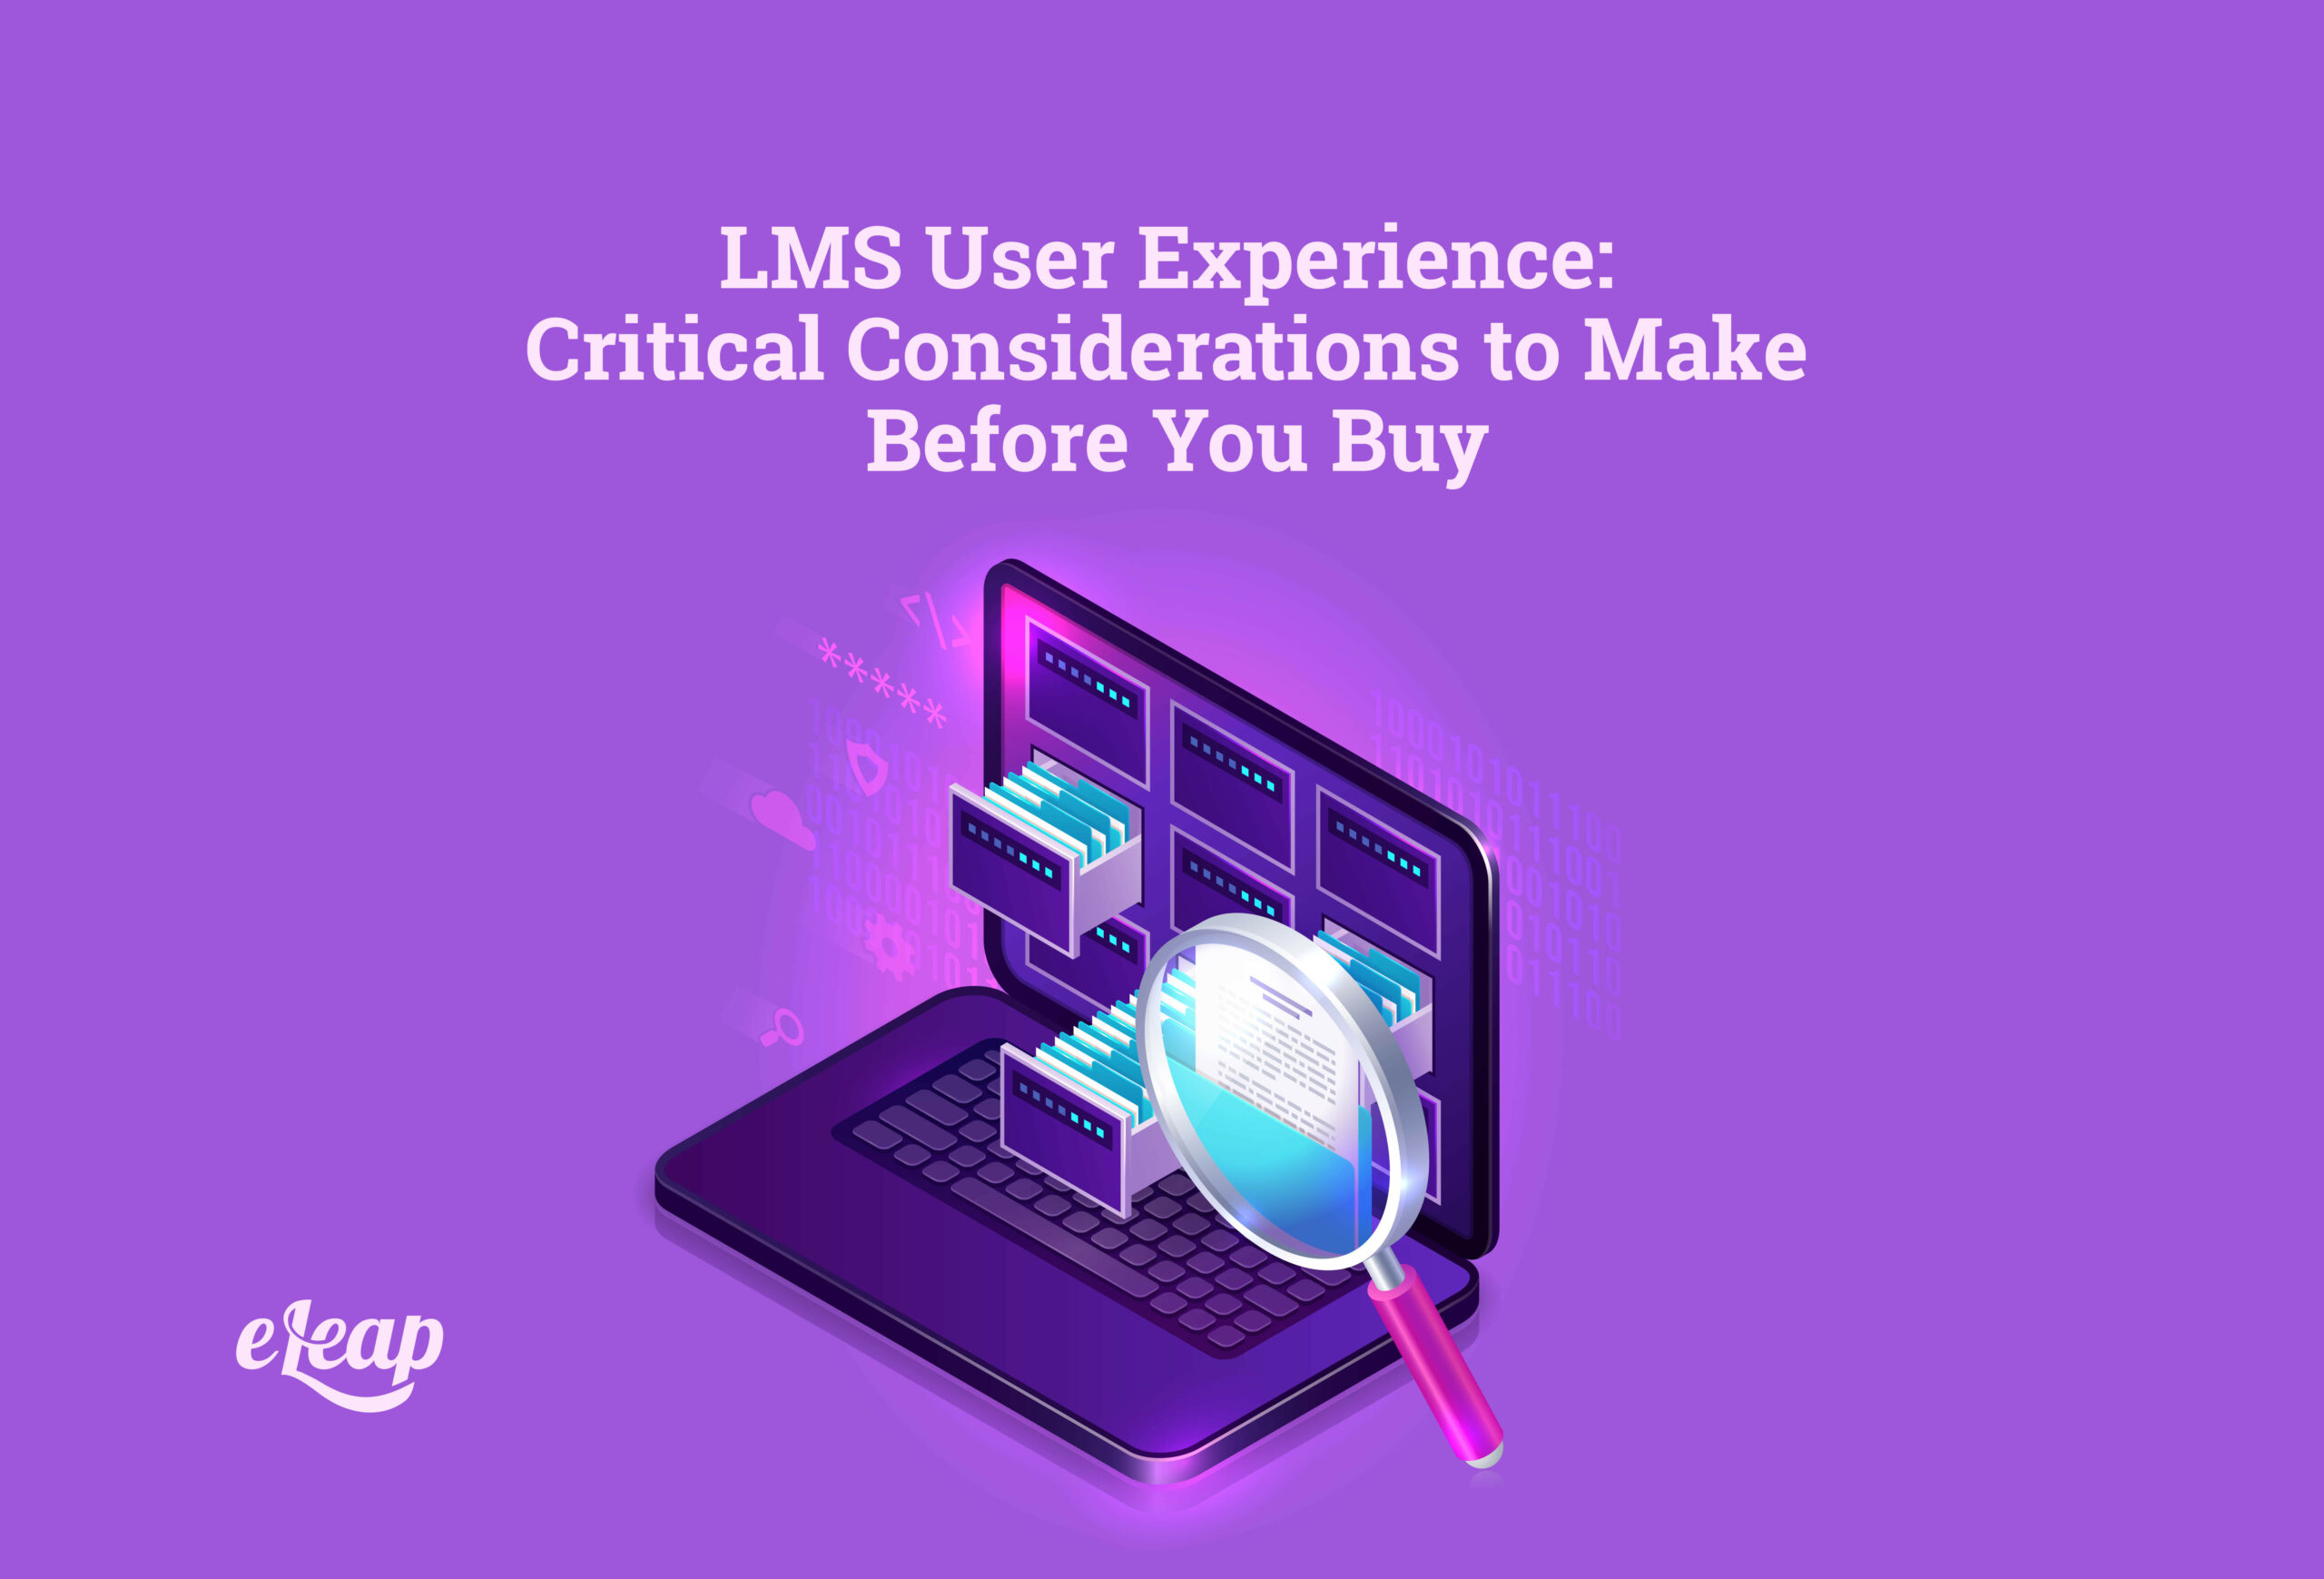 LMS User Experience: Critical Considerations to Make Before You Buy